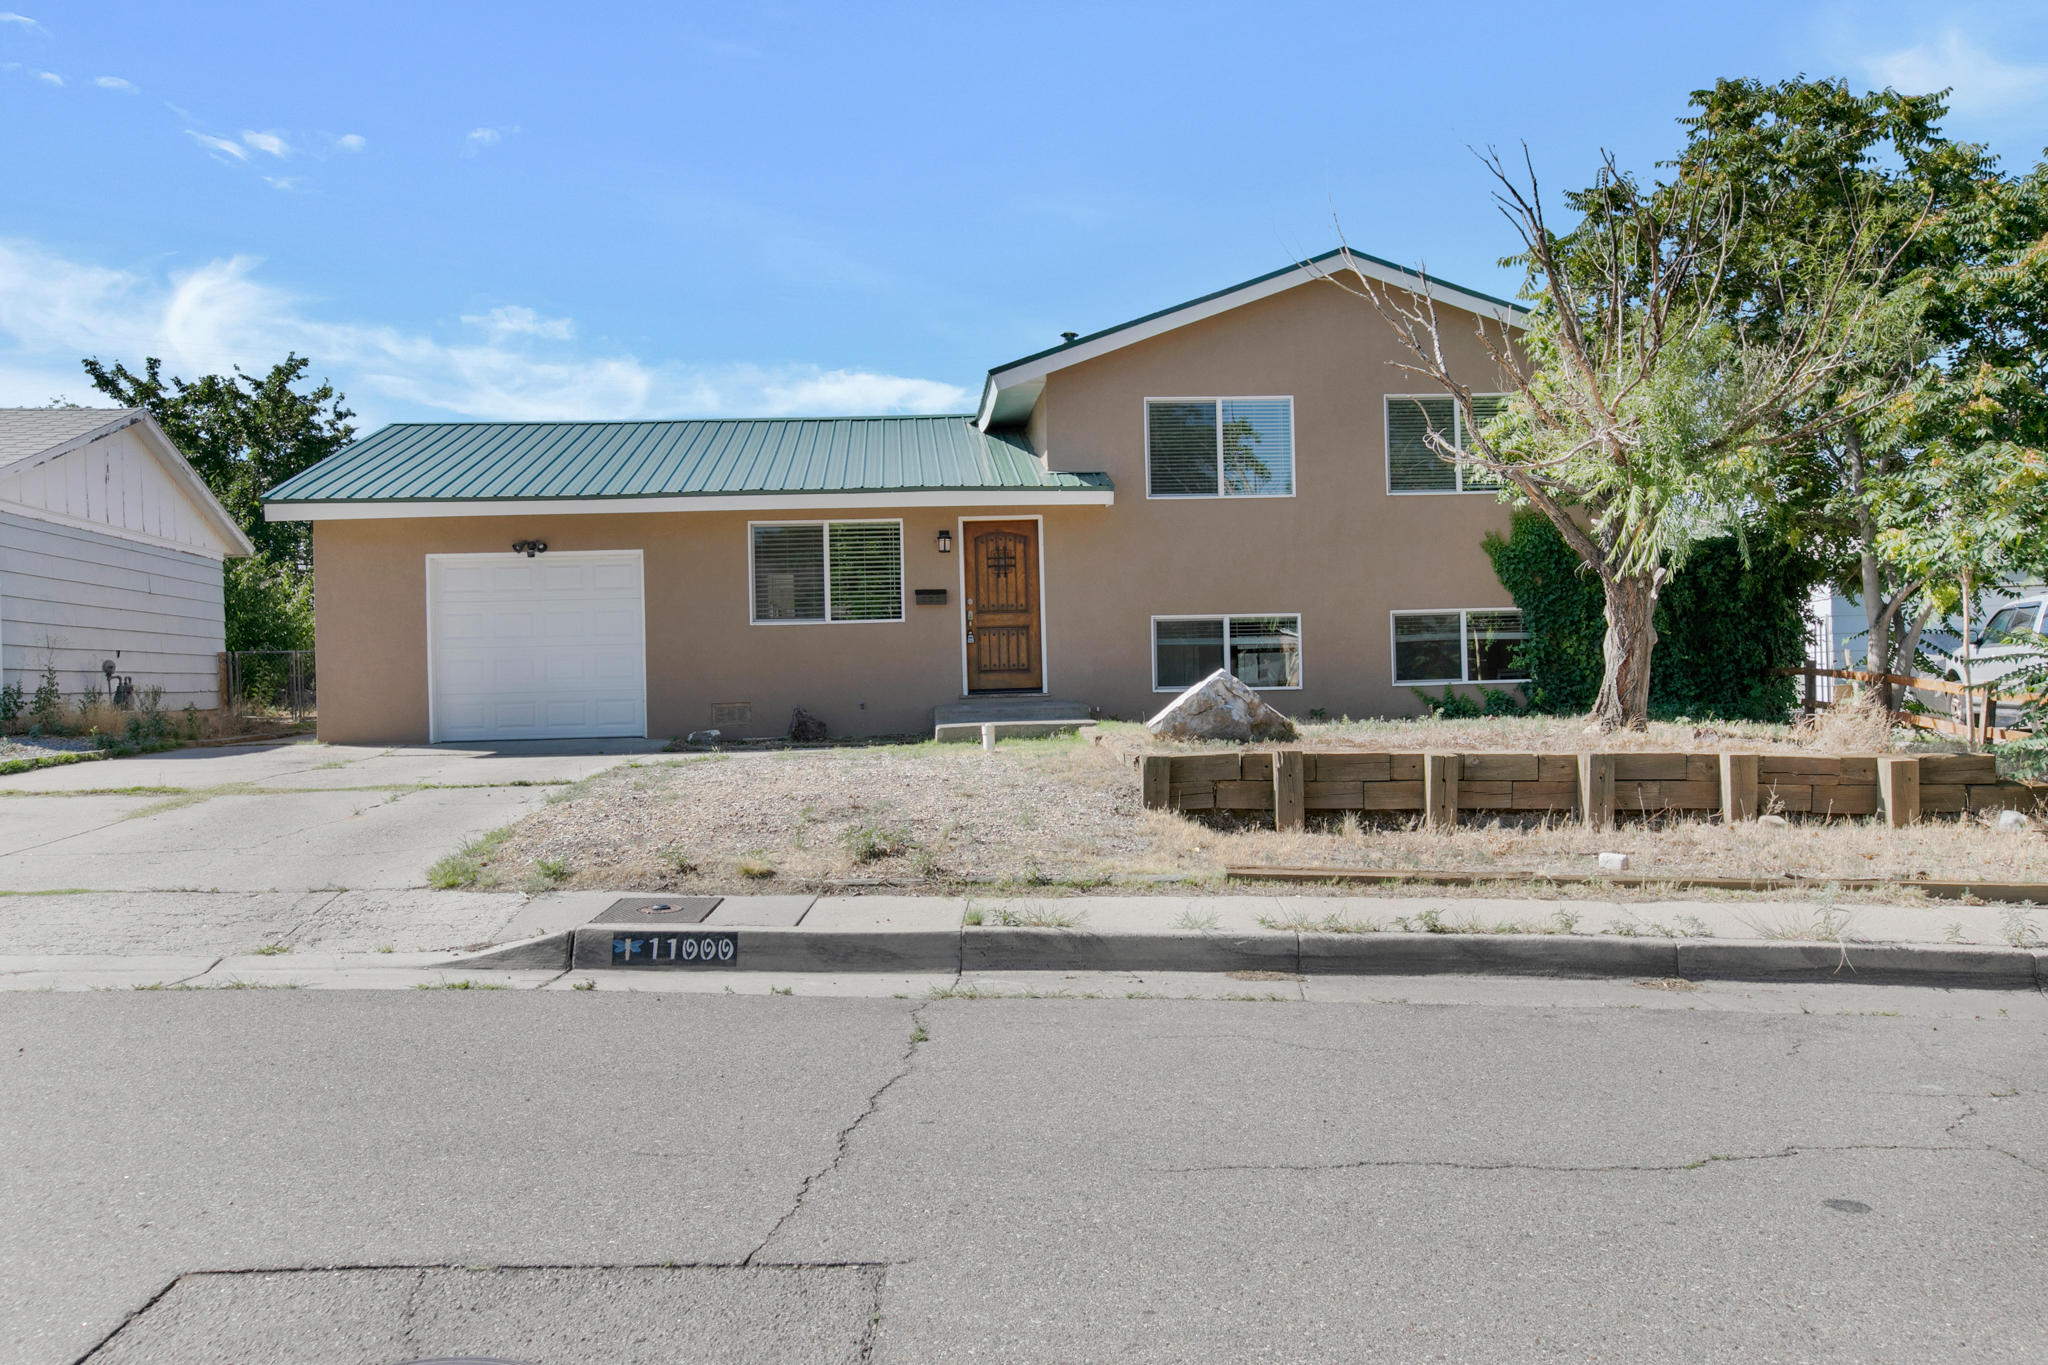 Very Nicely updated Split Level Beauty in Far Snow Heights.  Gleaming, refinished wood floors Sparkle in the Living, Upper Hall and all Bedrooms. Tile in Baths & Kitchen with Carpet in Family Room Below. Recently remodeling that included a new Metal Roof, Vinyl Windows and Stucco Too!. Quality Interior Updates to all Baths, Kitchen Cabinets, Fixtures, Doors and Hardware.  The Cozy Country Kitchen includes Granite Counters, Large Single Basin SS sink and SS Appliances, including the Refrigerator. The Massive Family room with a full bath takes up the entire lower level and could be spilt into a Bedroom and a Family room with ease. Newer Furnace and Refrigerated Air complete the Updates.  There is a 260 SF Covered Sun Porch and a separate Shed.  Don't Miss Out on this Great Home.!!